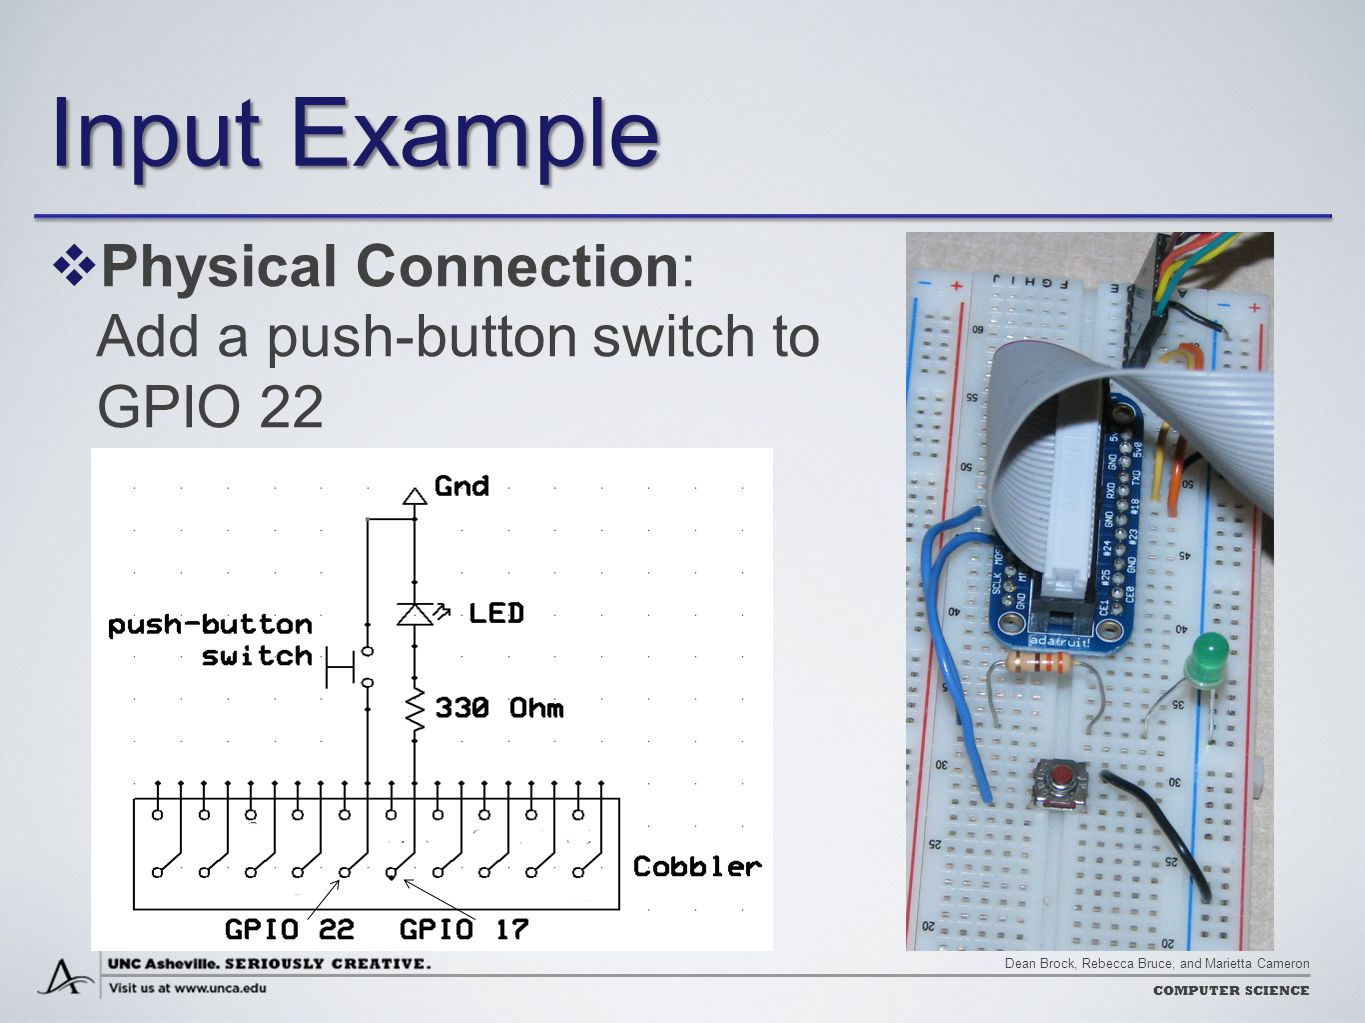 Dean Brock, Rebecca Bruce, and Marietta Cameron COMPUTER SCIENCE Input Example  Physical Connection: Add a push-button switch to GPIO 22